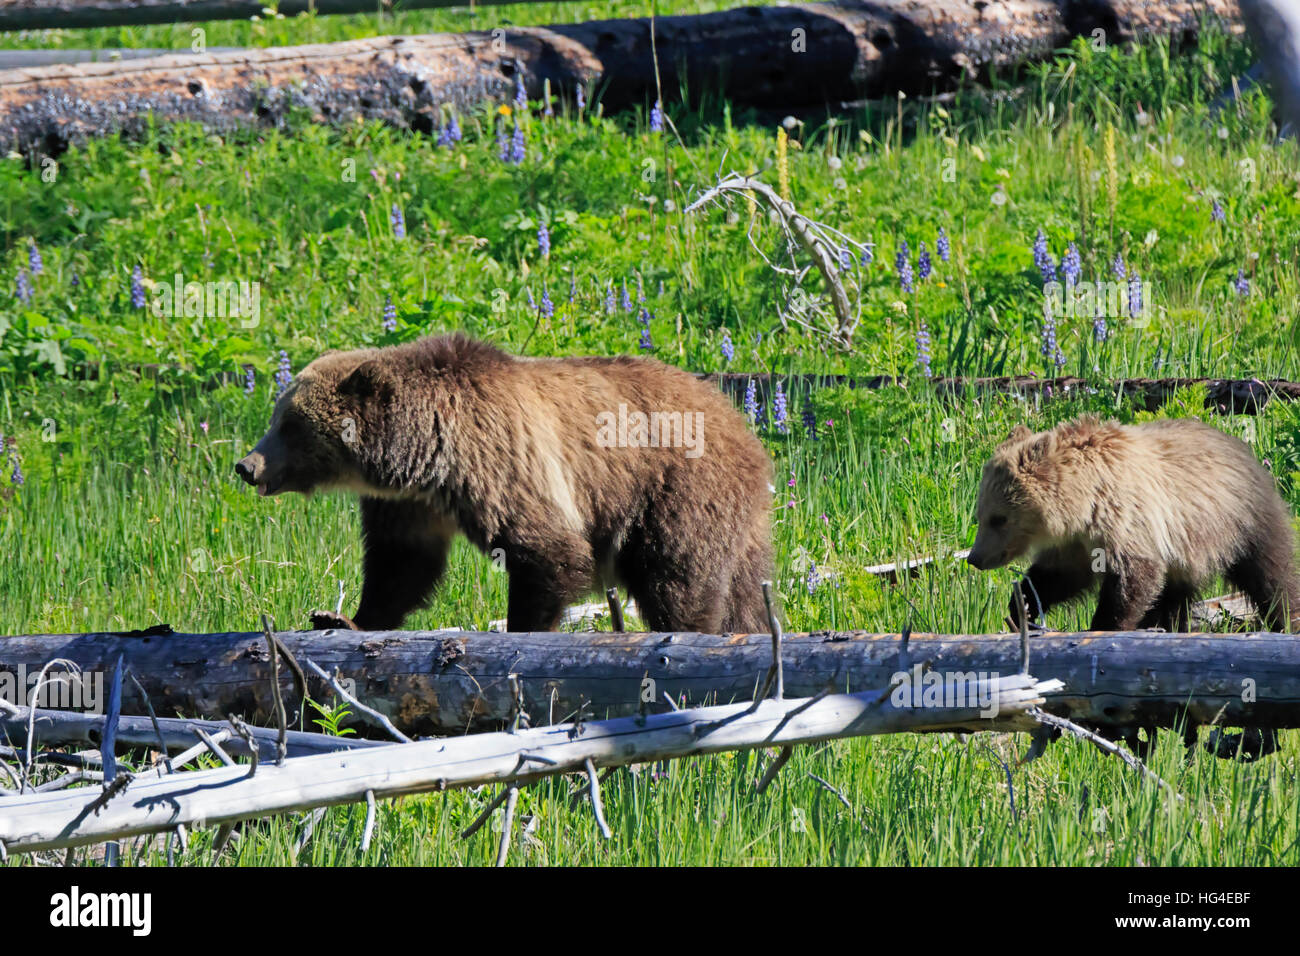 North American Brown Bear, Ursus arctos horribilis, sow with cub in Yellowstone National Park Stock Photo